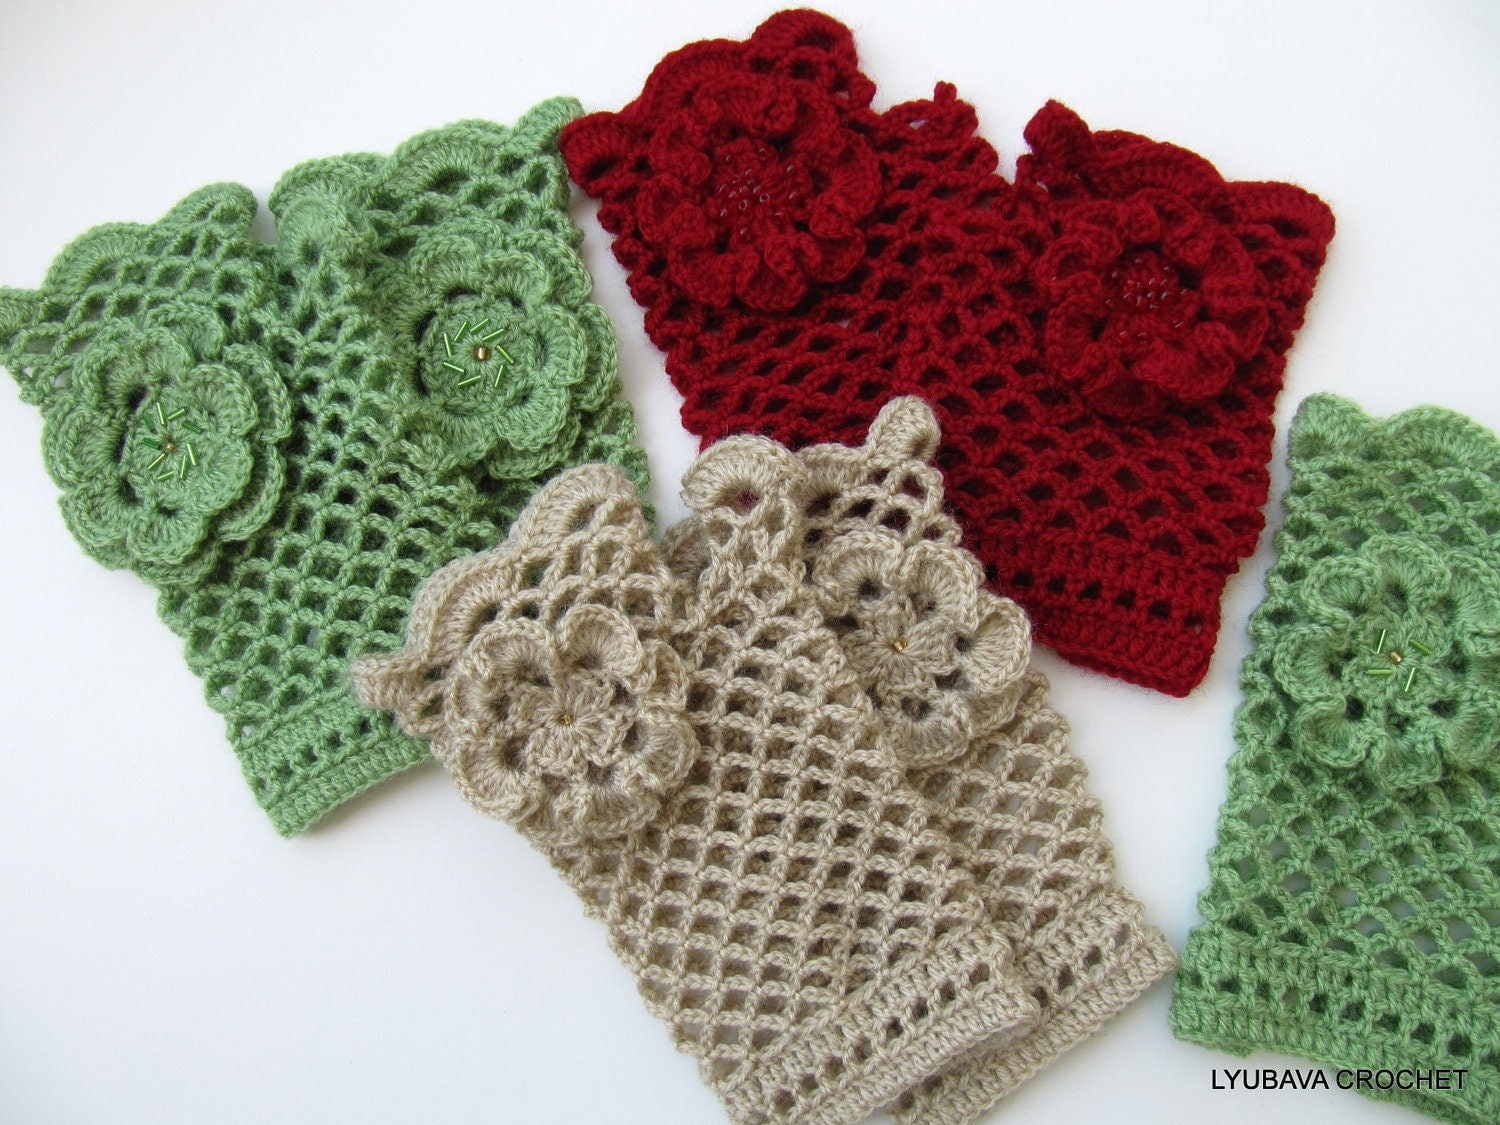 Crochet Fingerless Gloves Tutorials : CROCHET PATTERN Womens Fingerless Gloves by LyubavaCrochet